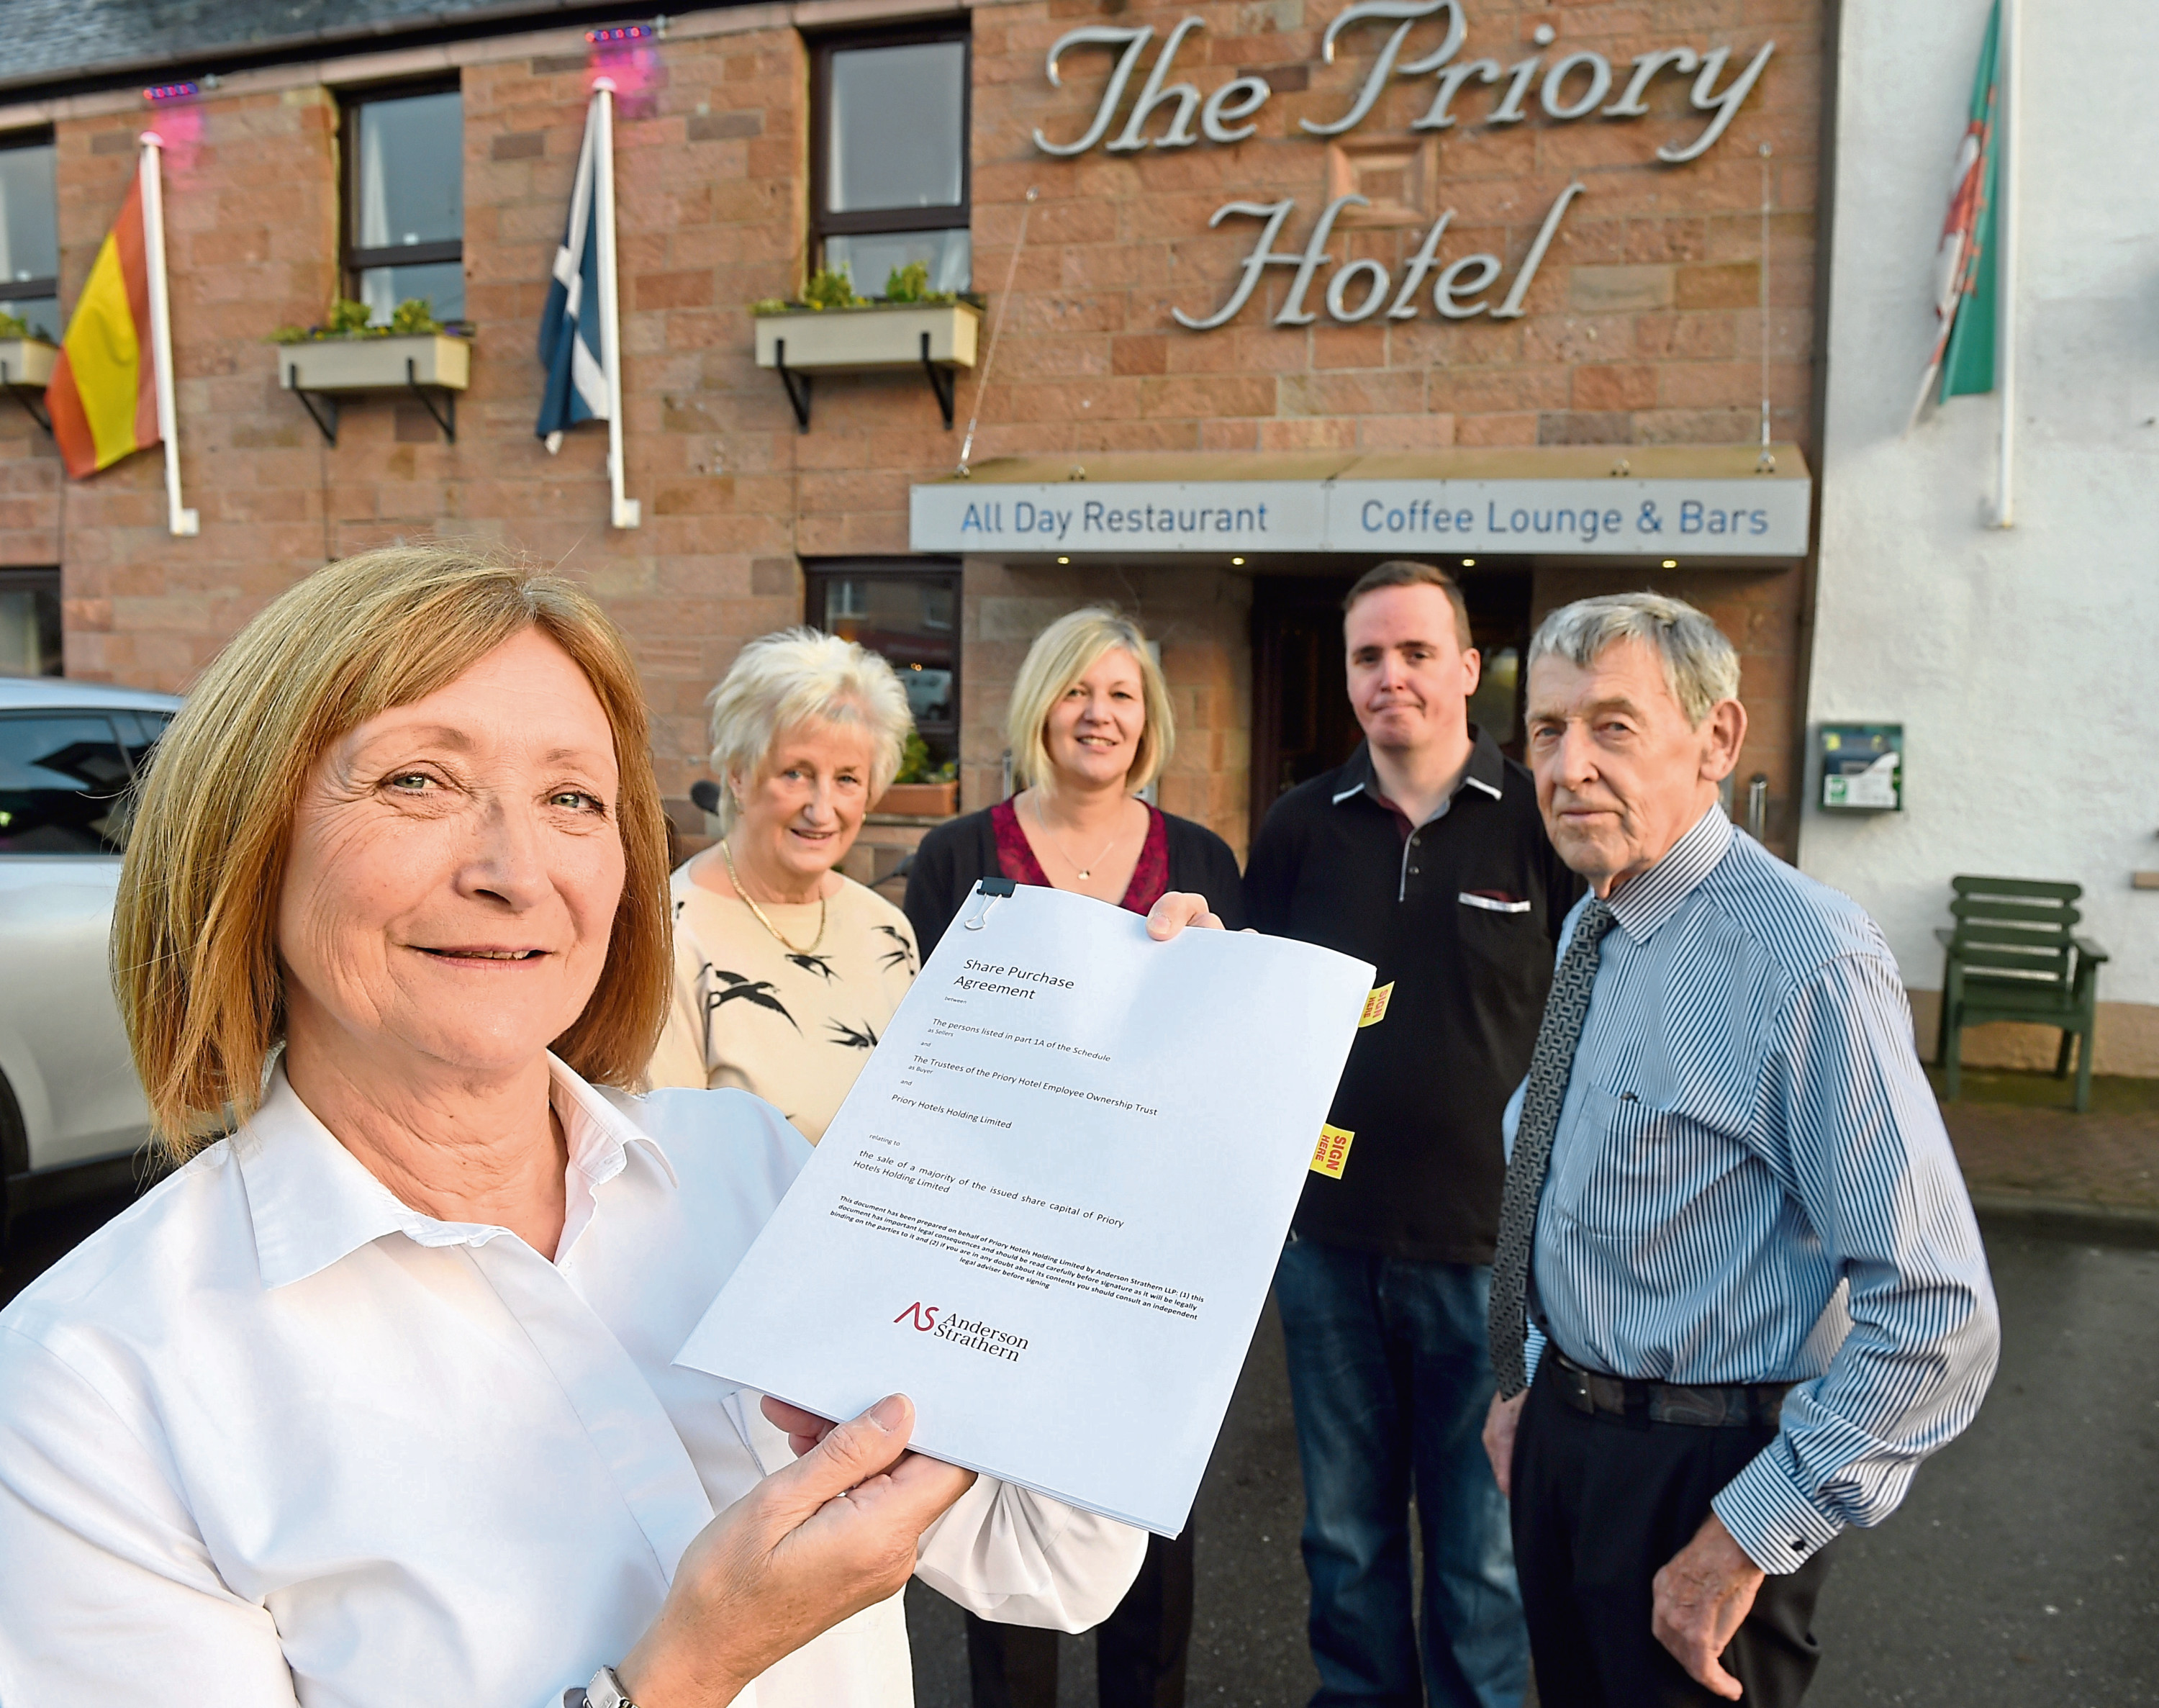 Member of staff, Veronica Finlay (left) with Eveline (second left) and Stuart (right) Hutton while in the centre are fellow employees Barry Wright and Janet Munro.